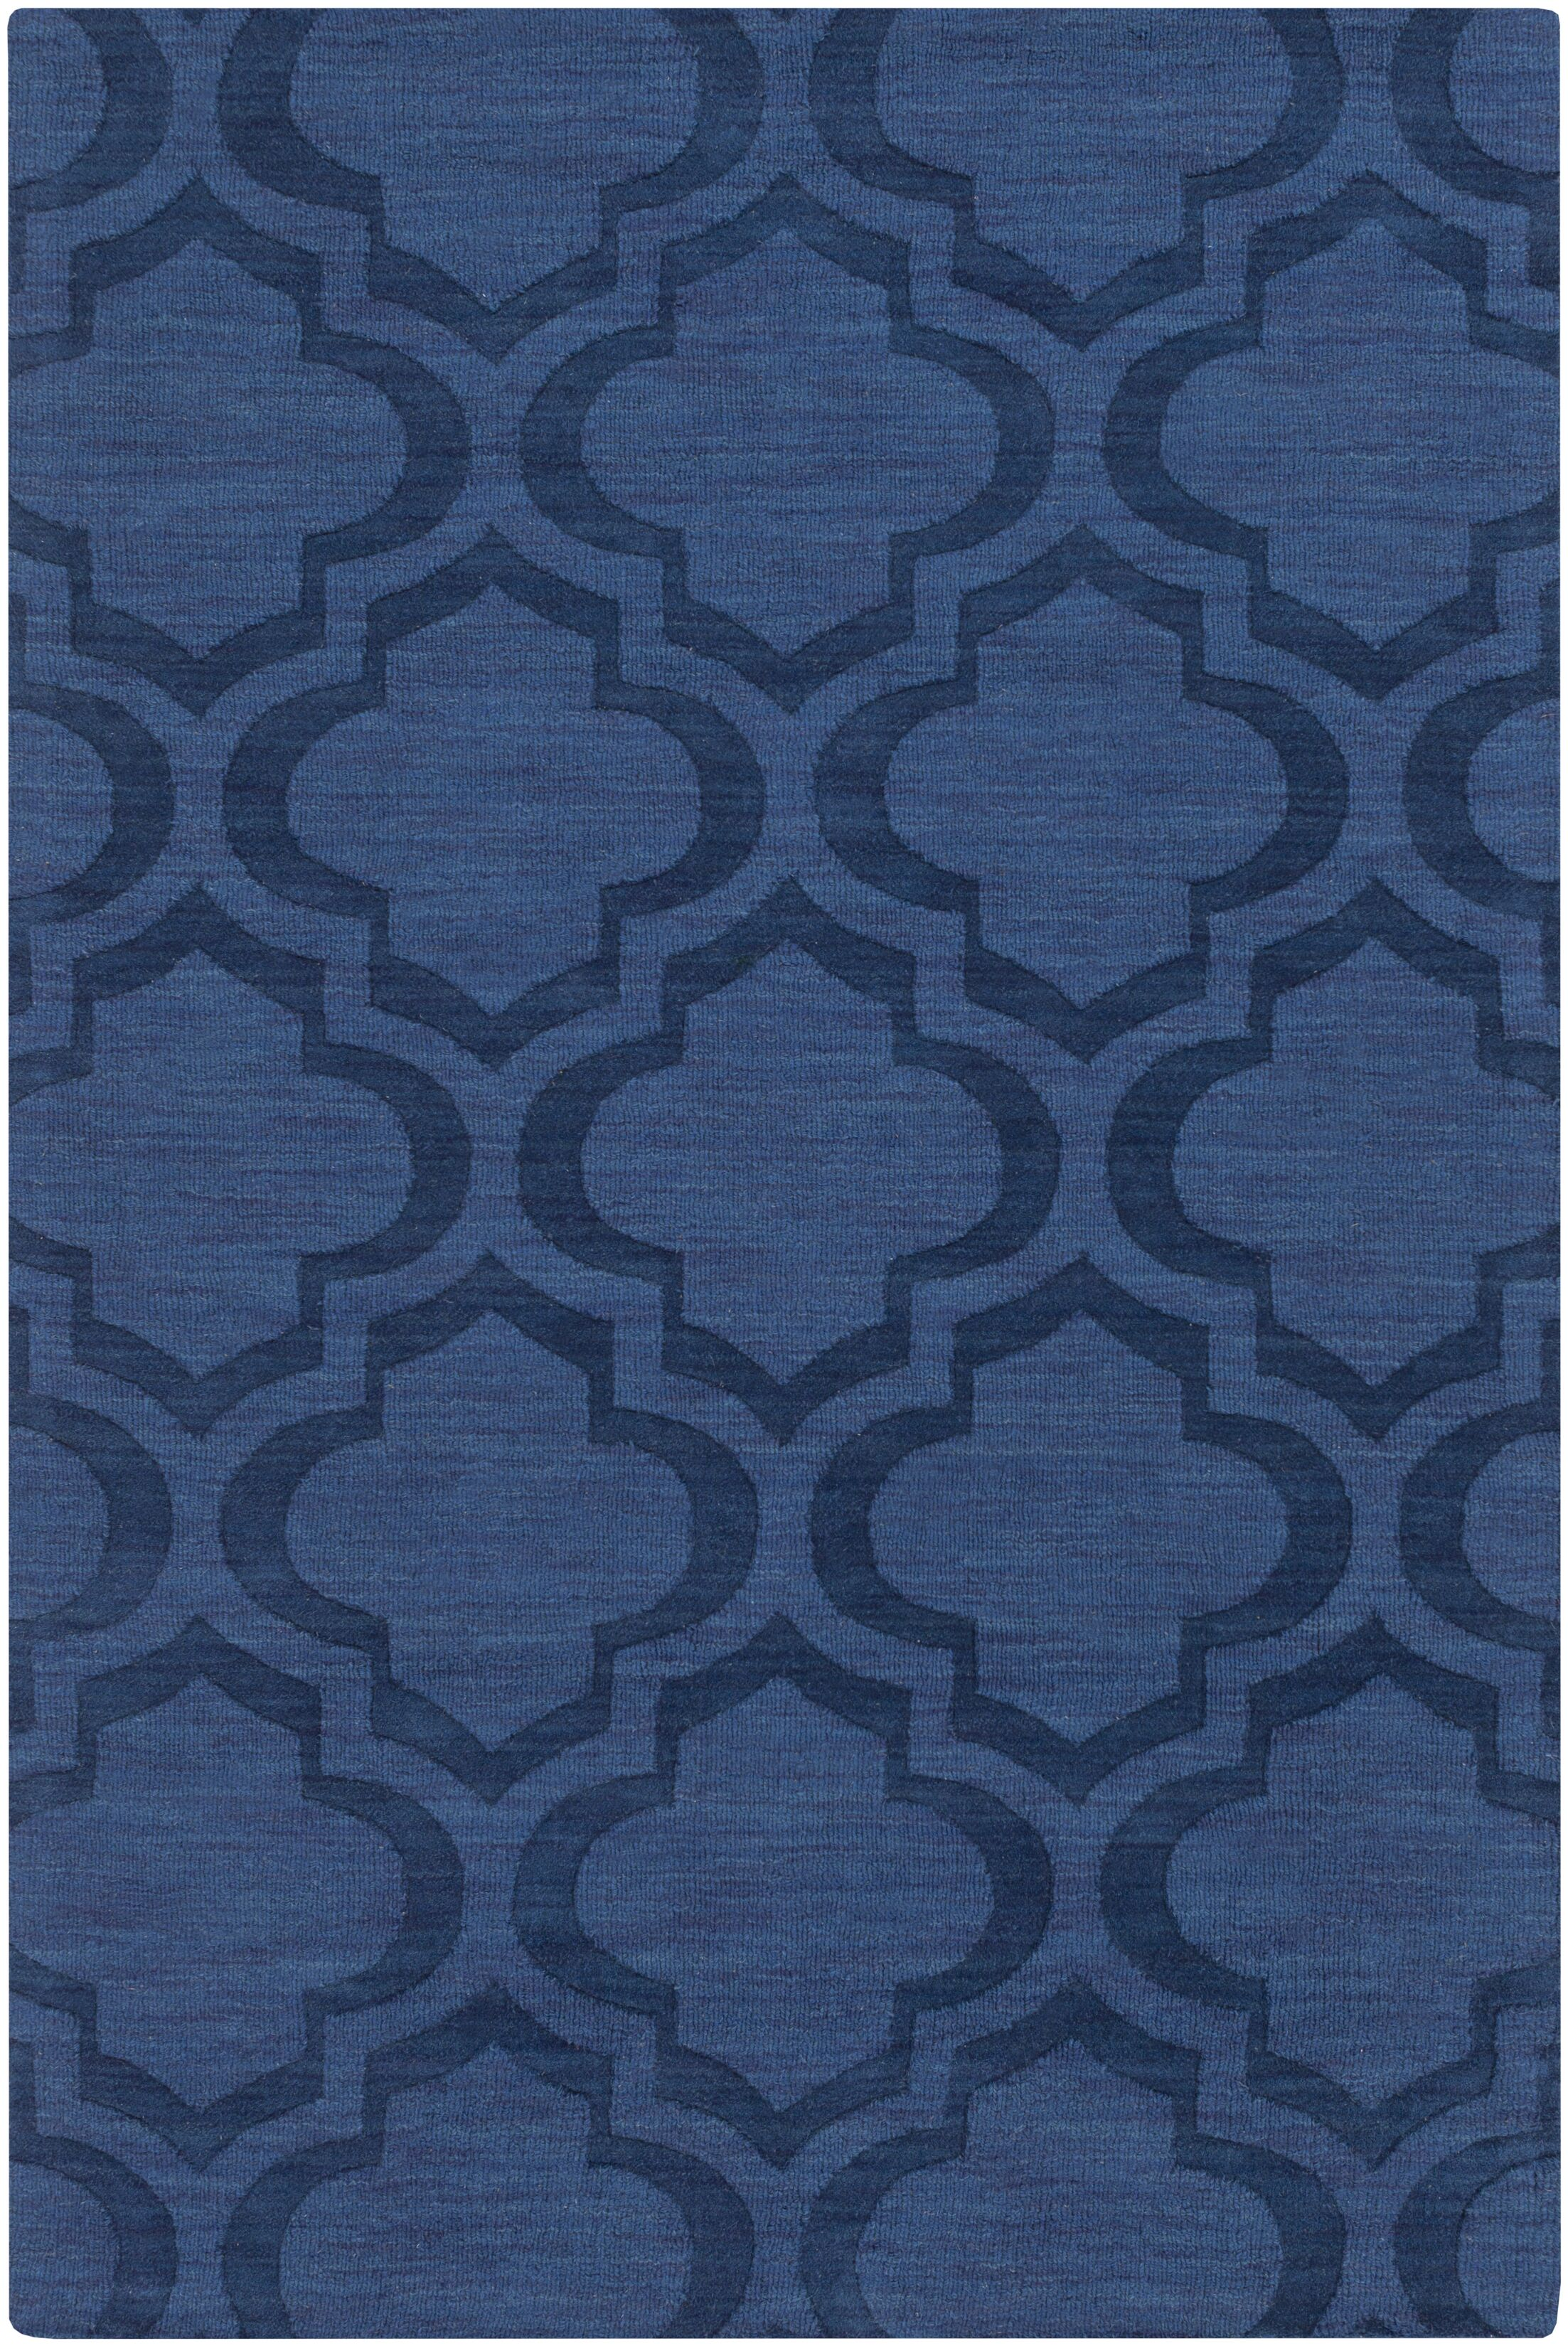 Castro Hand Woven Wool Navy Area Rug Rug Size: Rectangle 5' x 7'6